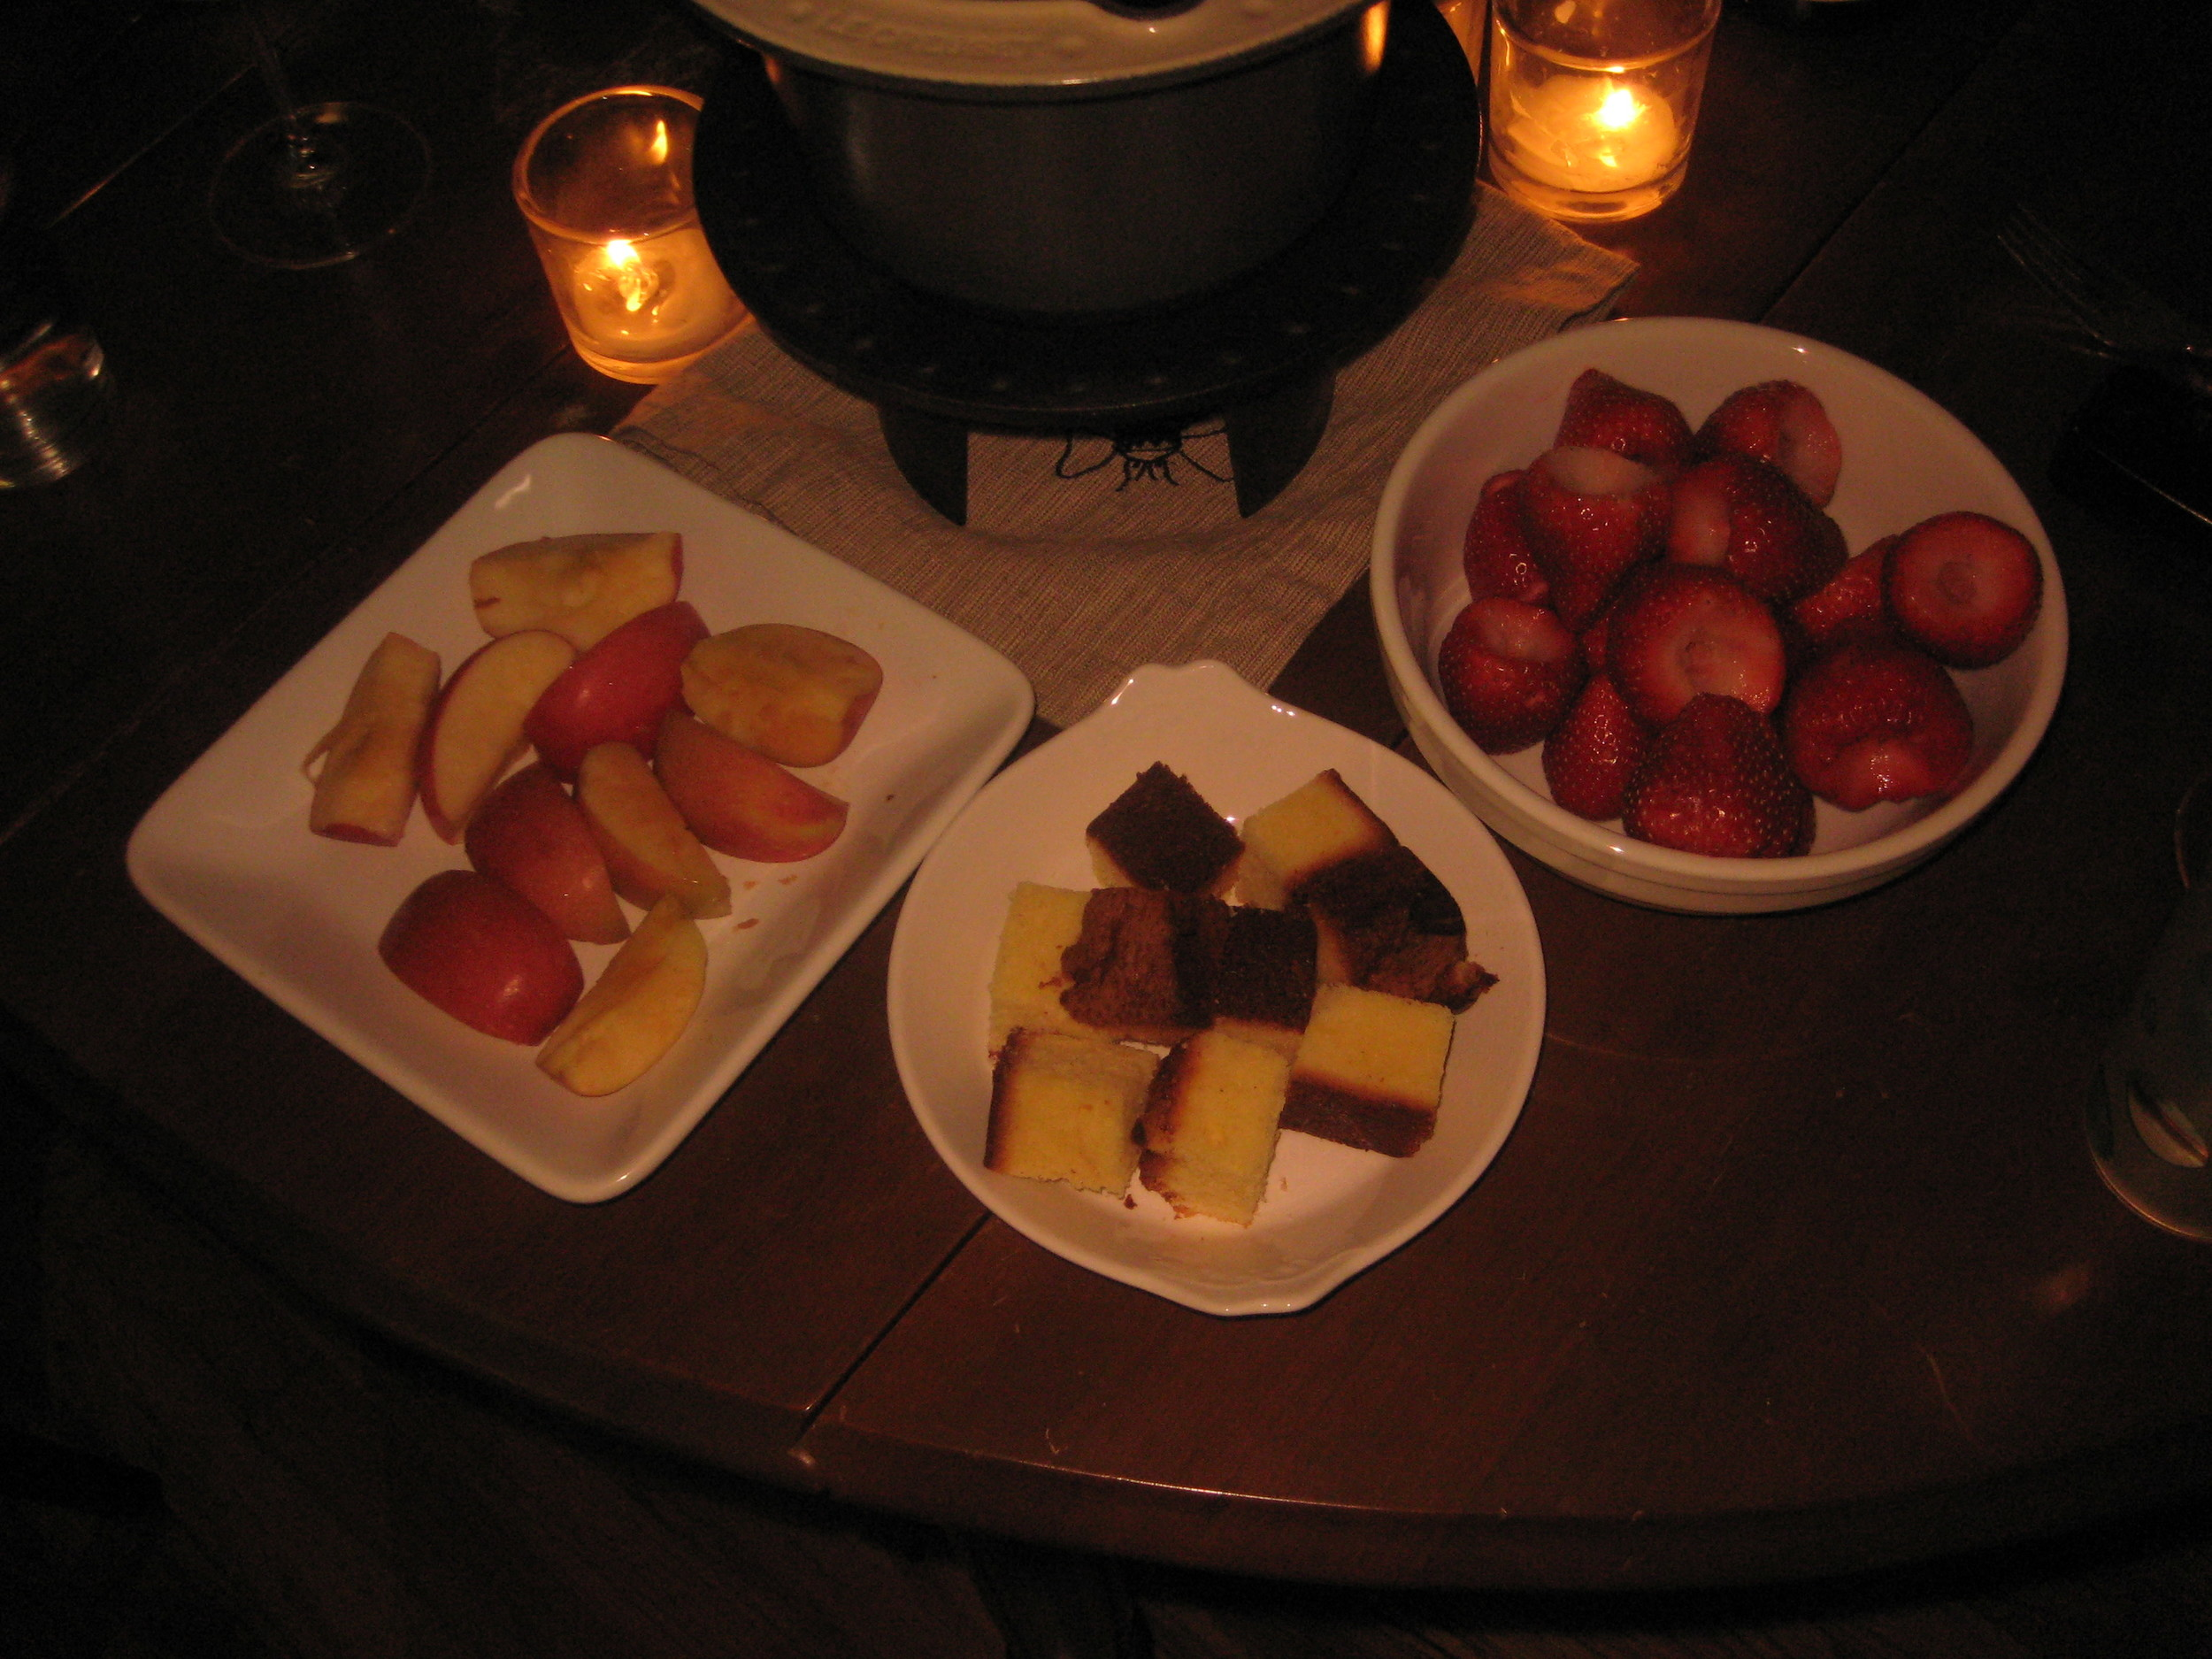 chocolate fondue by candlelight